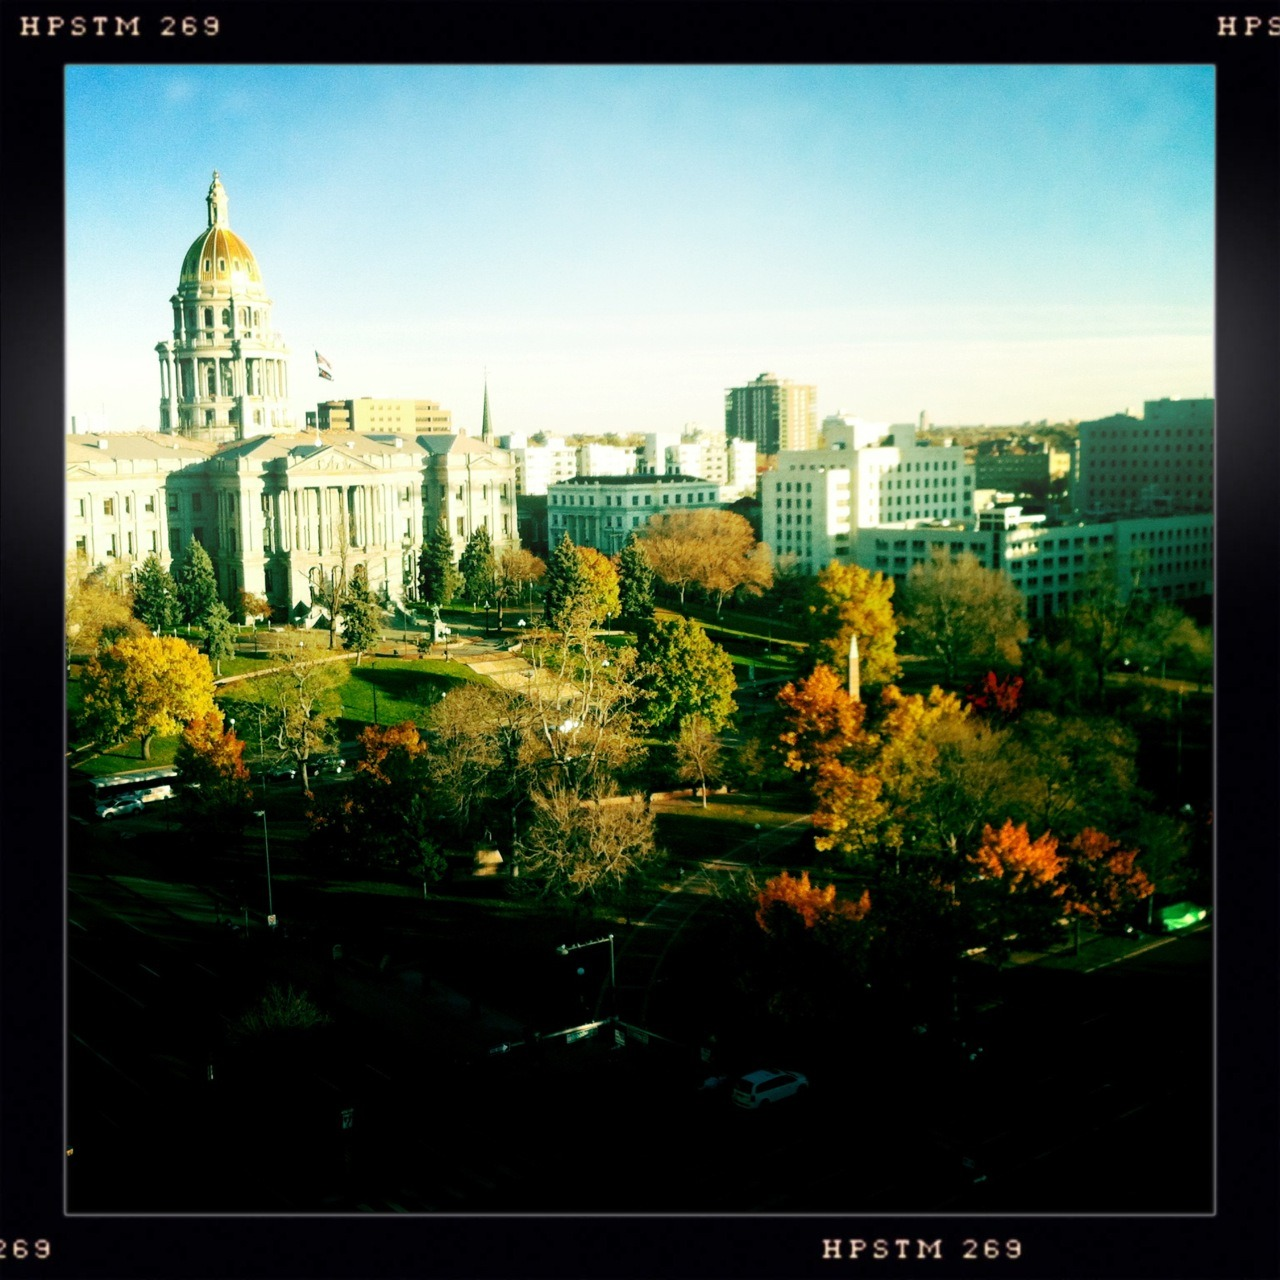 Last Splash of Color Taken with Hipstamatic, John S Lens, Pistil Film, No Flash.